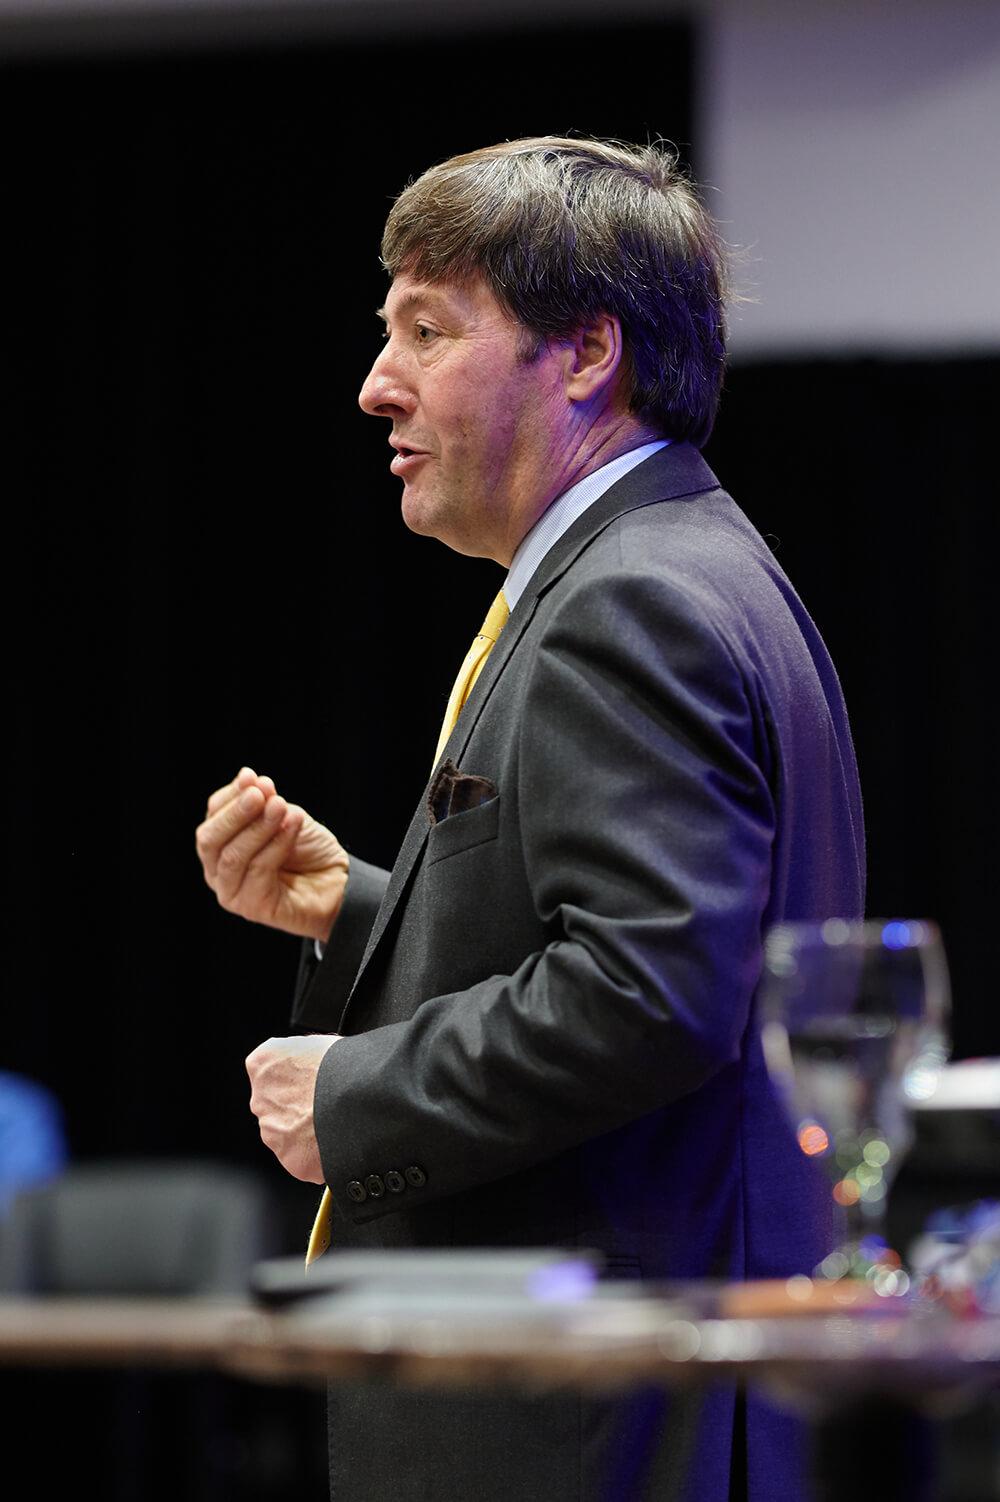 Eamonn O'Brien - Leading Business Storytelling Coach and Keynote Speaker